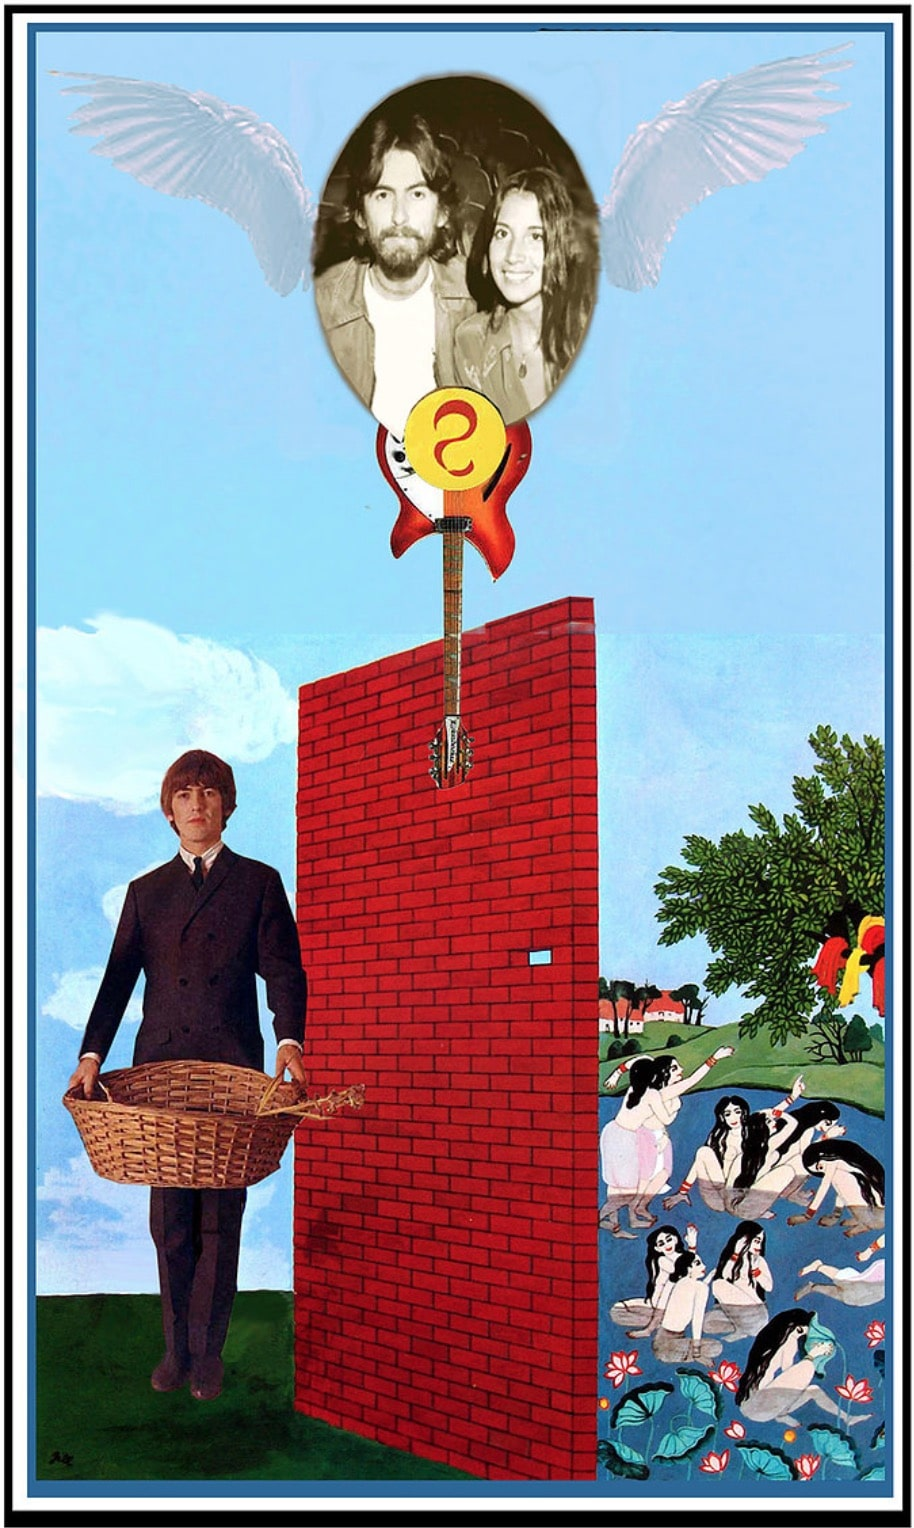 Tarot Decks Based on The Beatles & Bowie